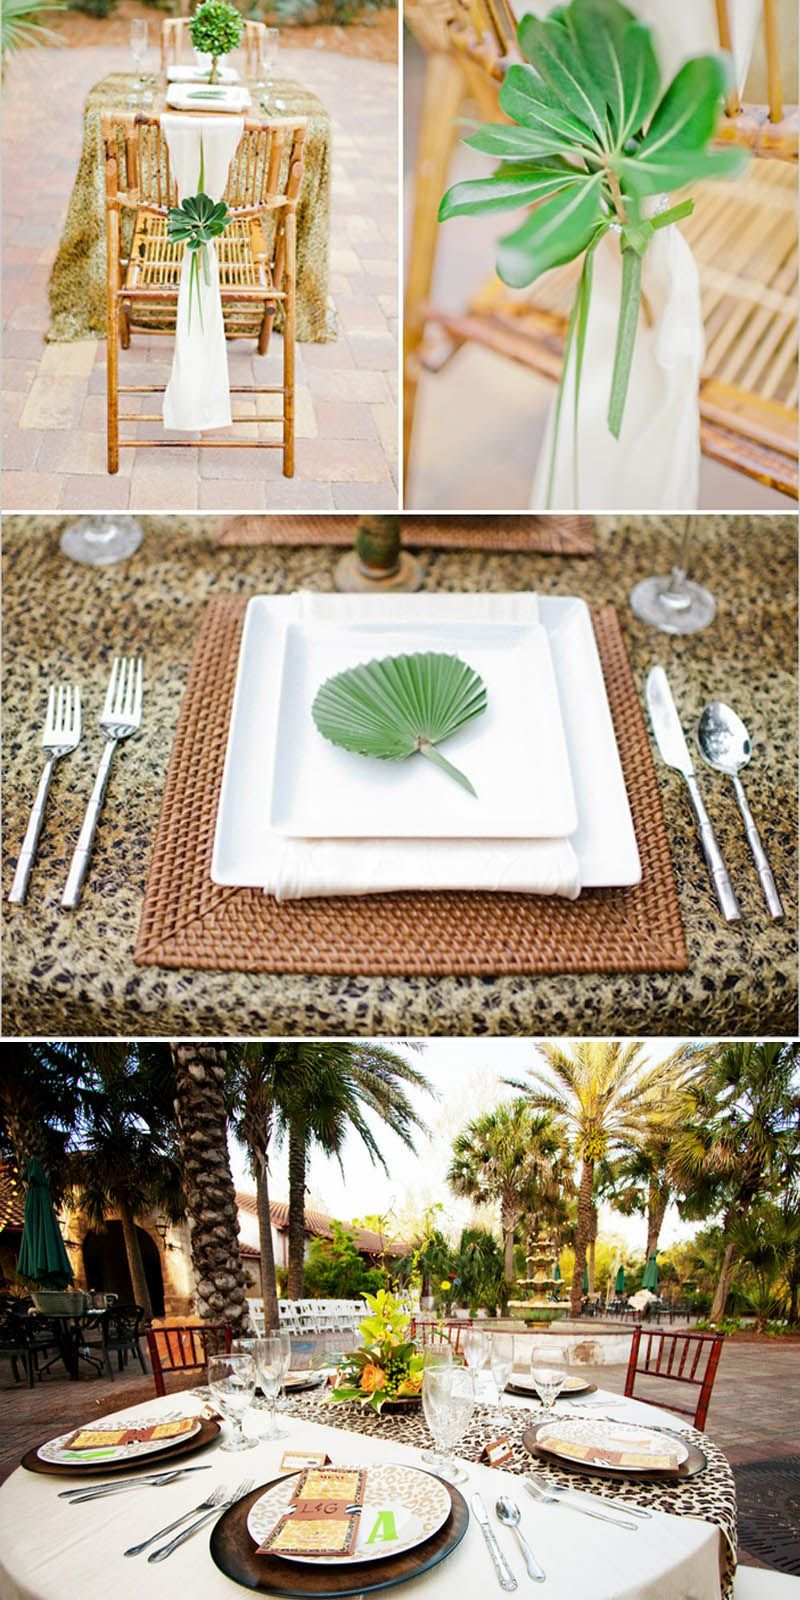 African wedding ideas decor yes baby daily wedding decor african wedding ideas decor yes baby daily junglespirit Gallery